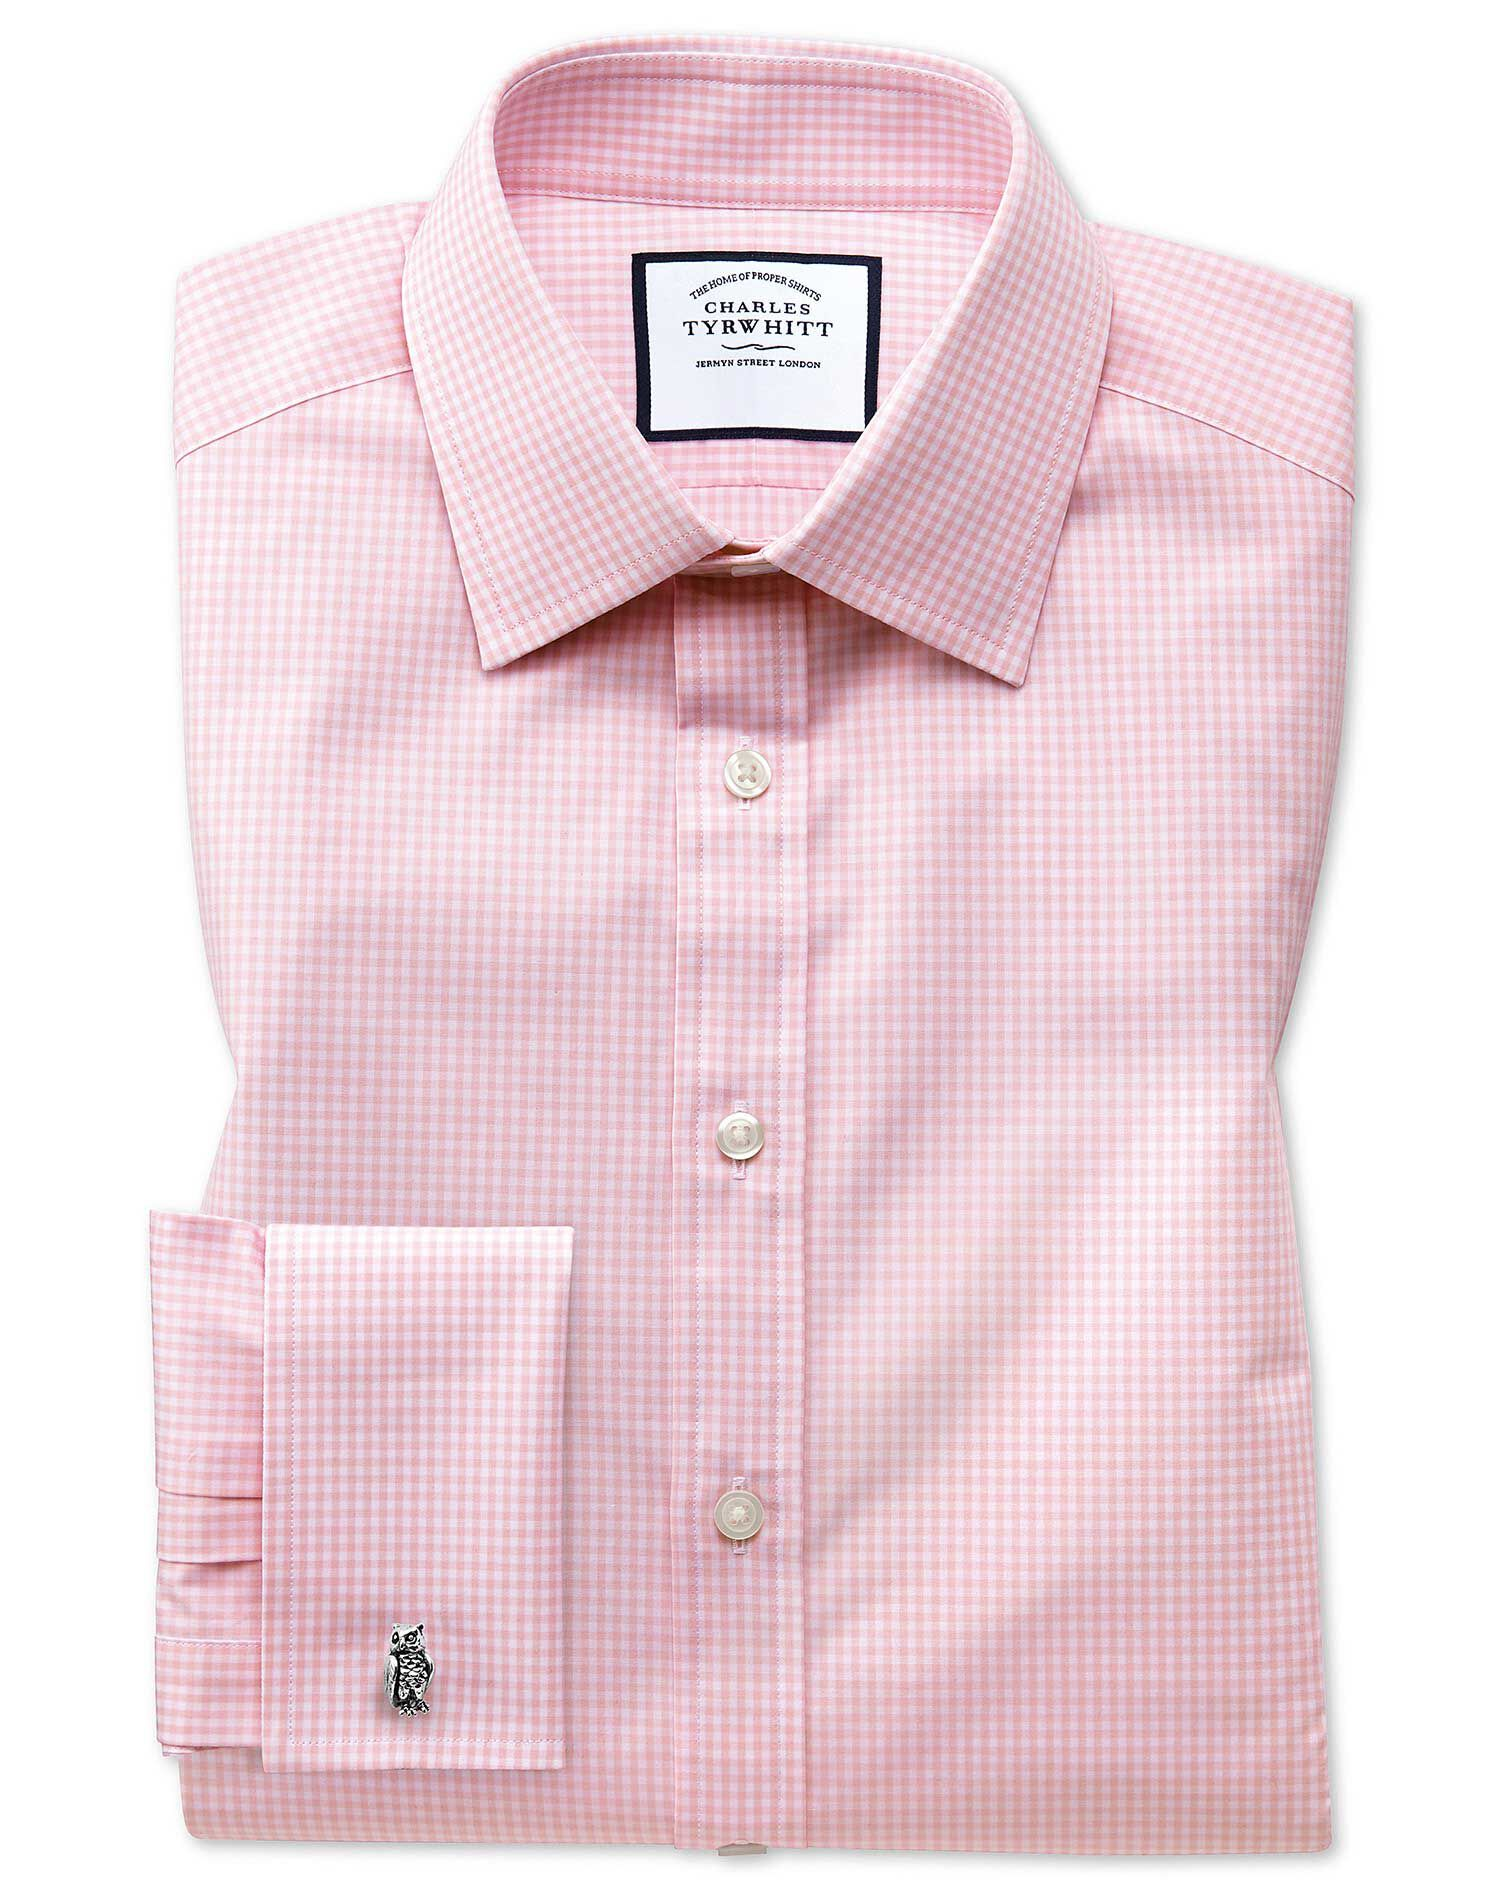 Slim Fit Small Gingham Light Pink Cotton Formal Shirt Double Cuff Size 16.5/33 by Charles Tyrwhitt